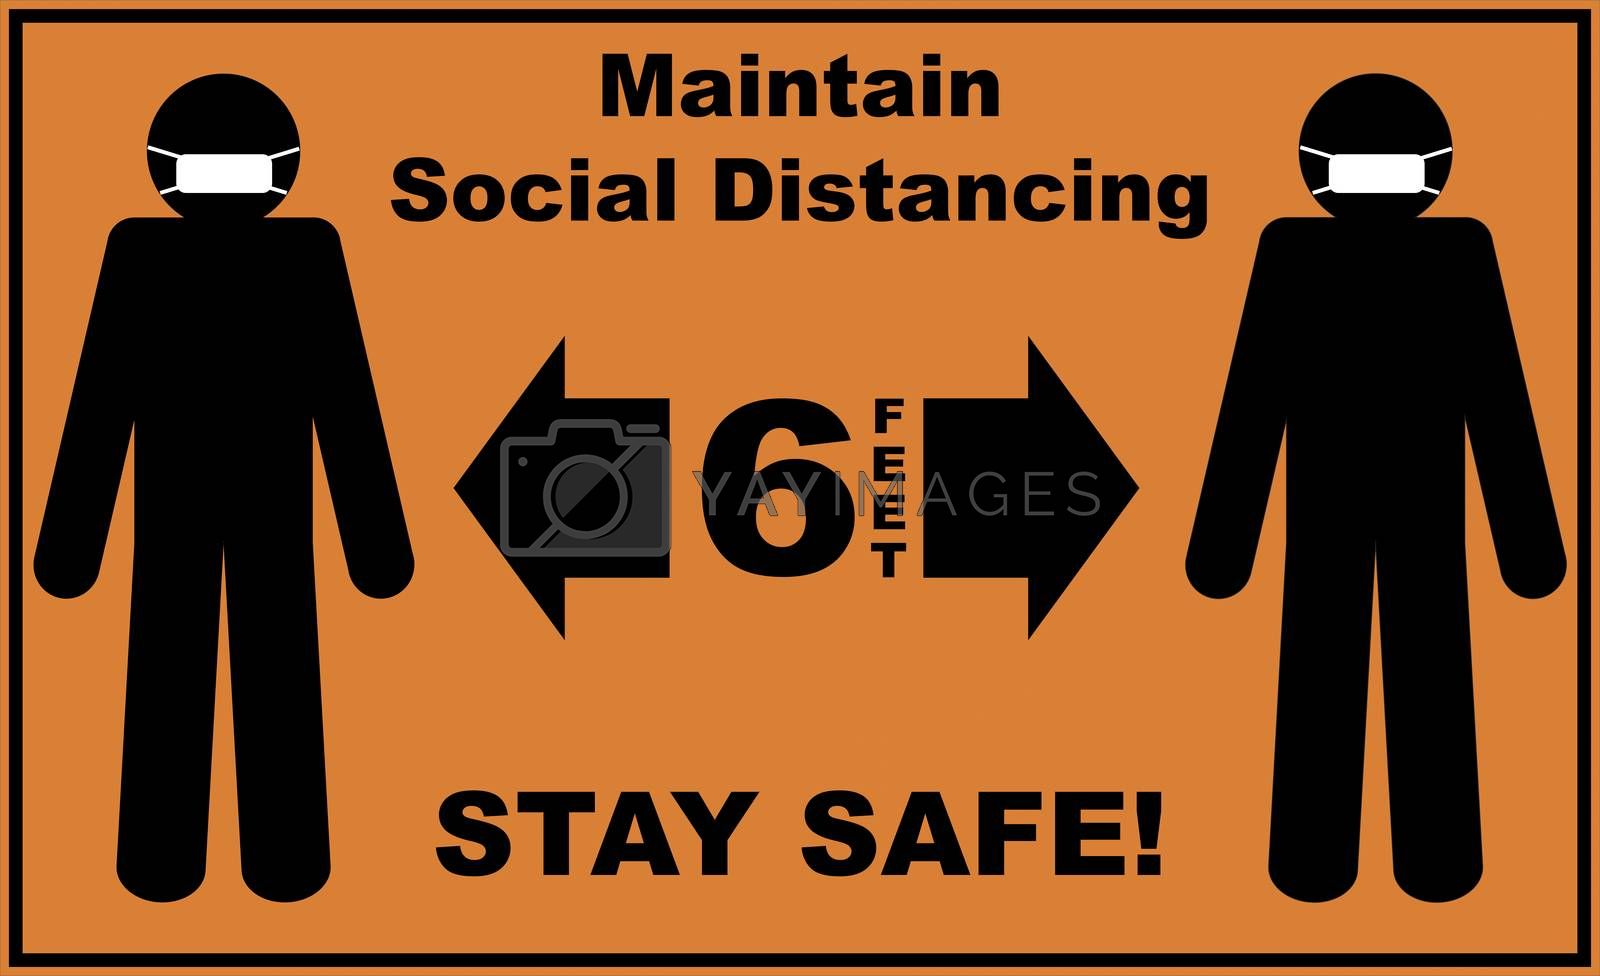 Social distance sign board with two silhouettes of men wearing masks and text asking to maintain 6 feet of social distancing